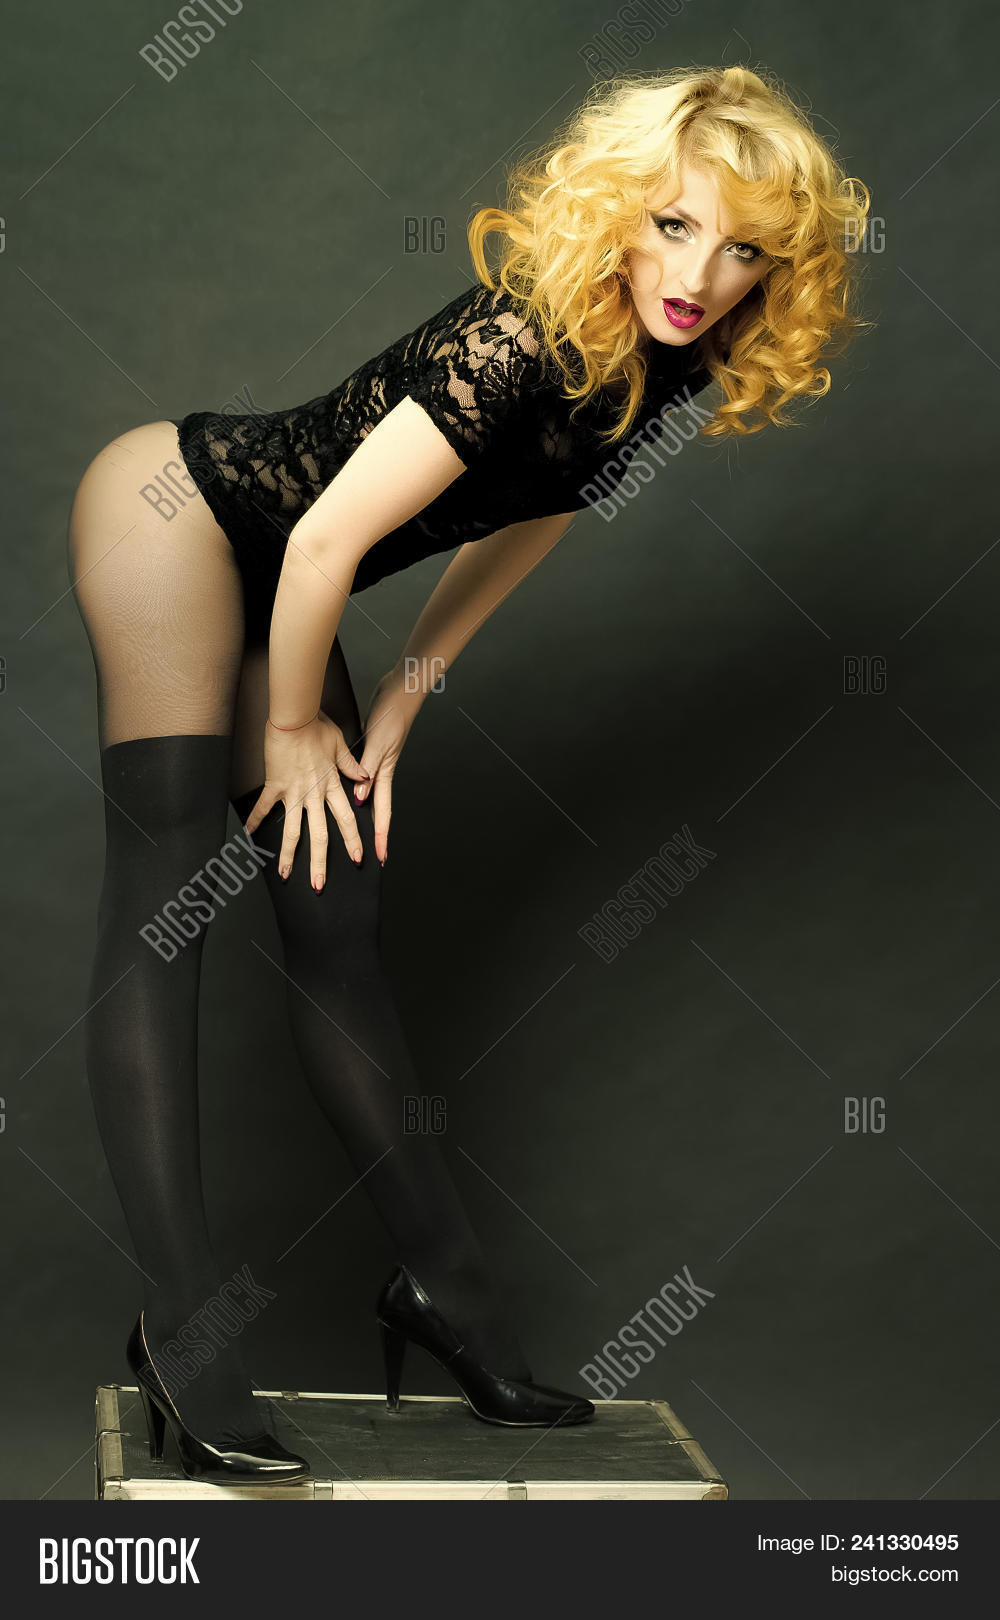 59dbc602348b High fashion portrait of elegant woman. Sensual woman. Sexy blonde young woman  with curly hair in black lace dress underwear shoes and stocking standing in  ...